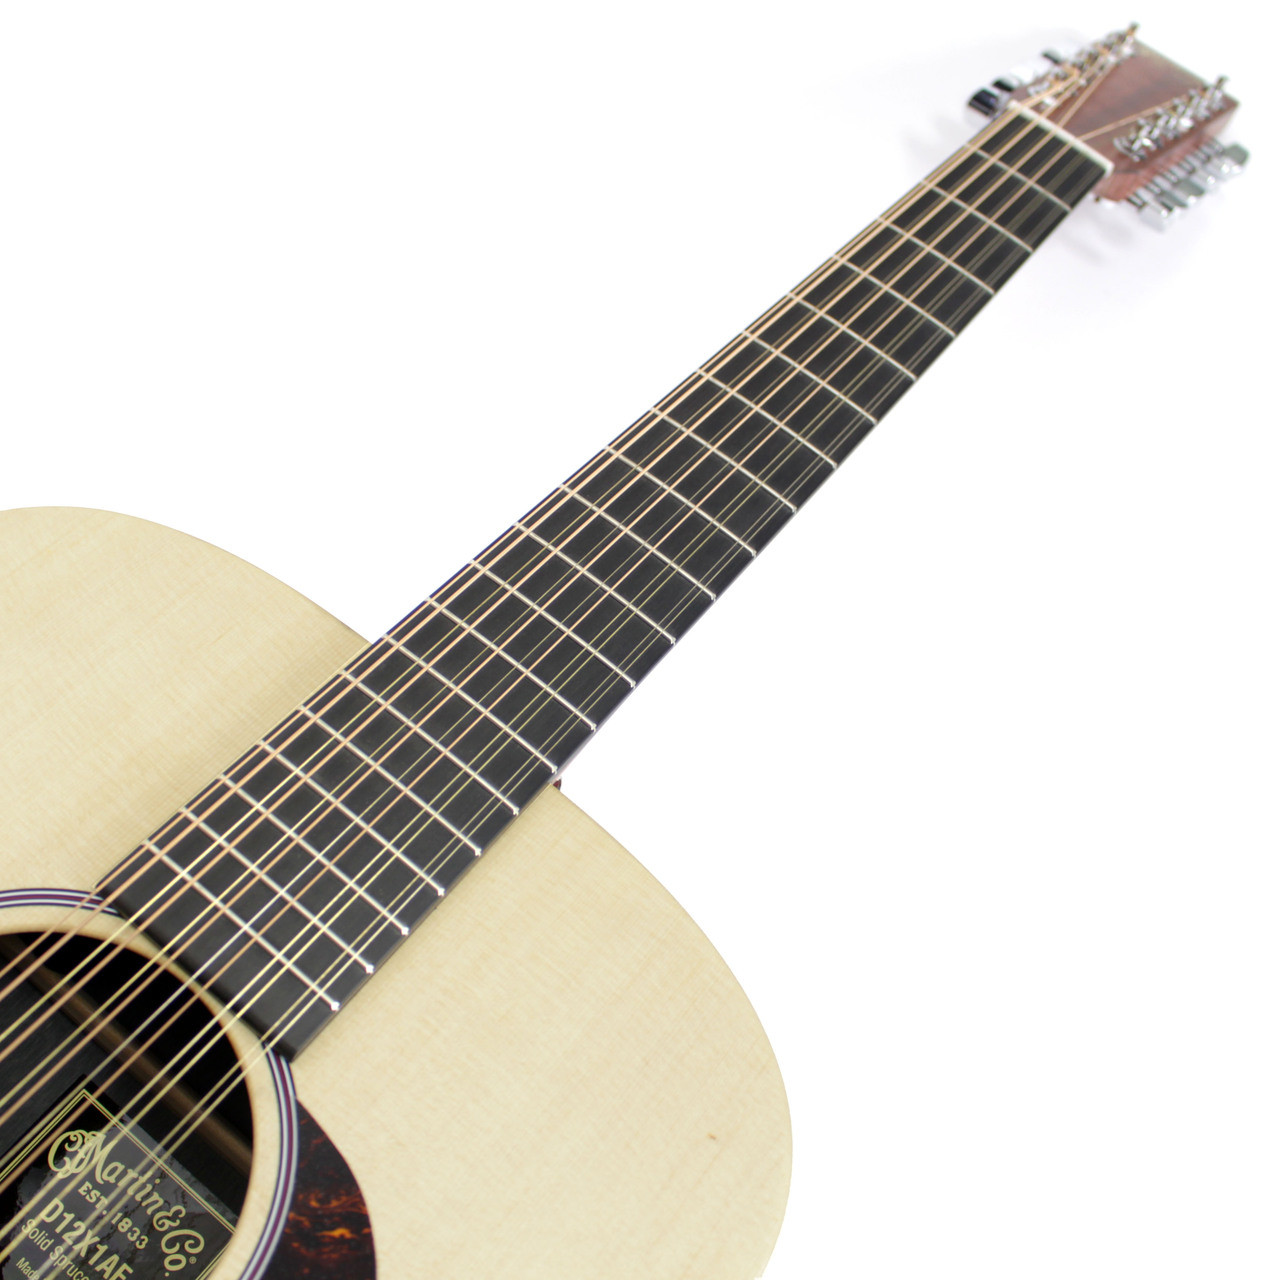 brand new martin d12x1ae 12 string dreadnought acoustic electric guitar natural ebay. Black Bedroom Furniture Sets. Home Design Ideas